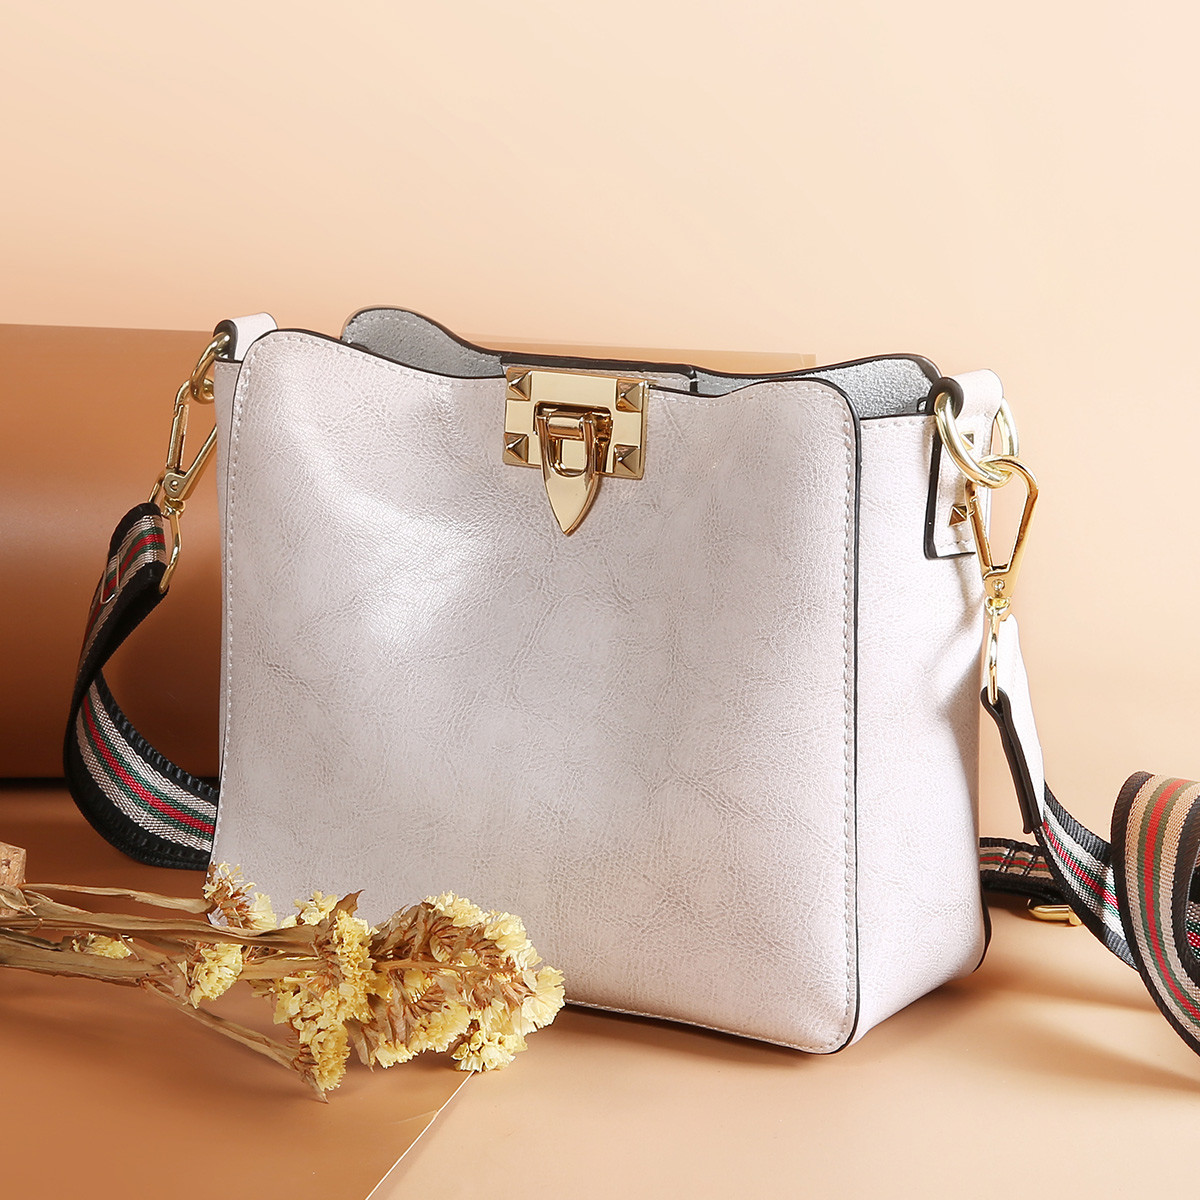 ACELOVE Luxury Shoulder Bag Set Womens Small Ladies Square Bucket Bags Genuine Leather Fashion Crossbody Bags for Female 2019ACELOVE Luxury Shoulder Bag Set Womens Small Ladies Square Bucket Bags Genuine Leather Fashion Crossbody Bags for Female 2019